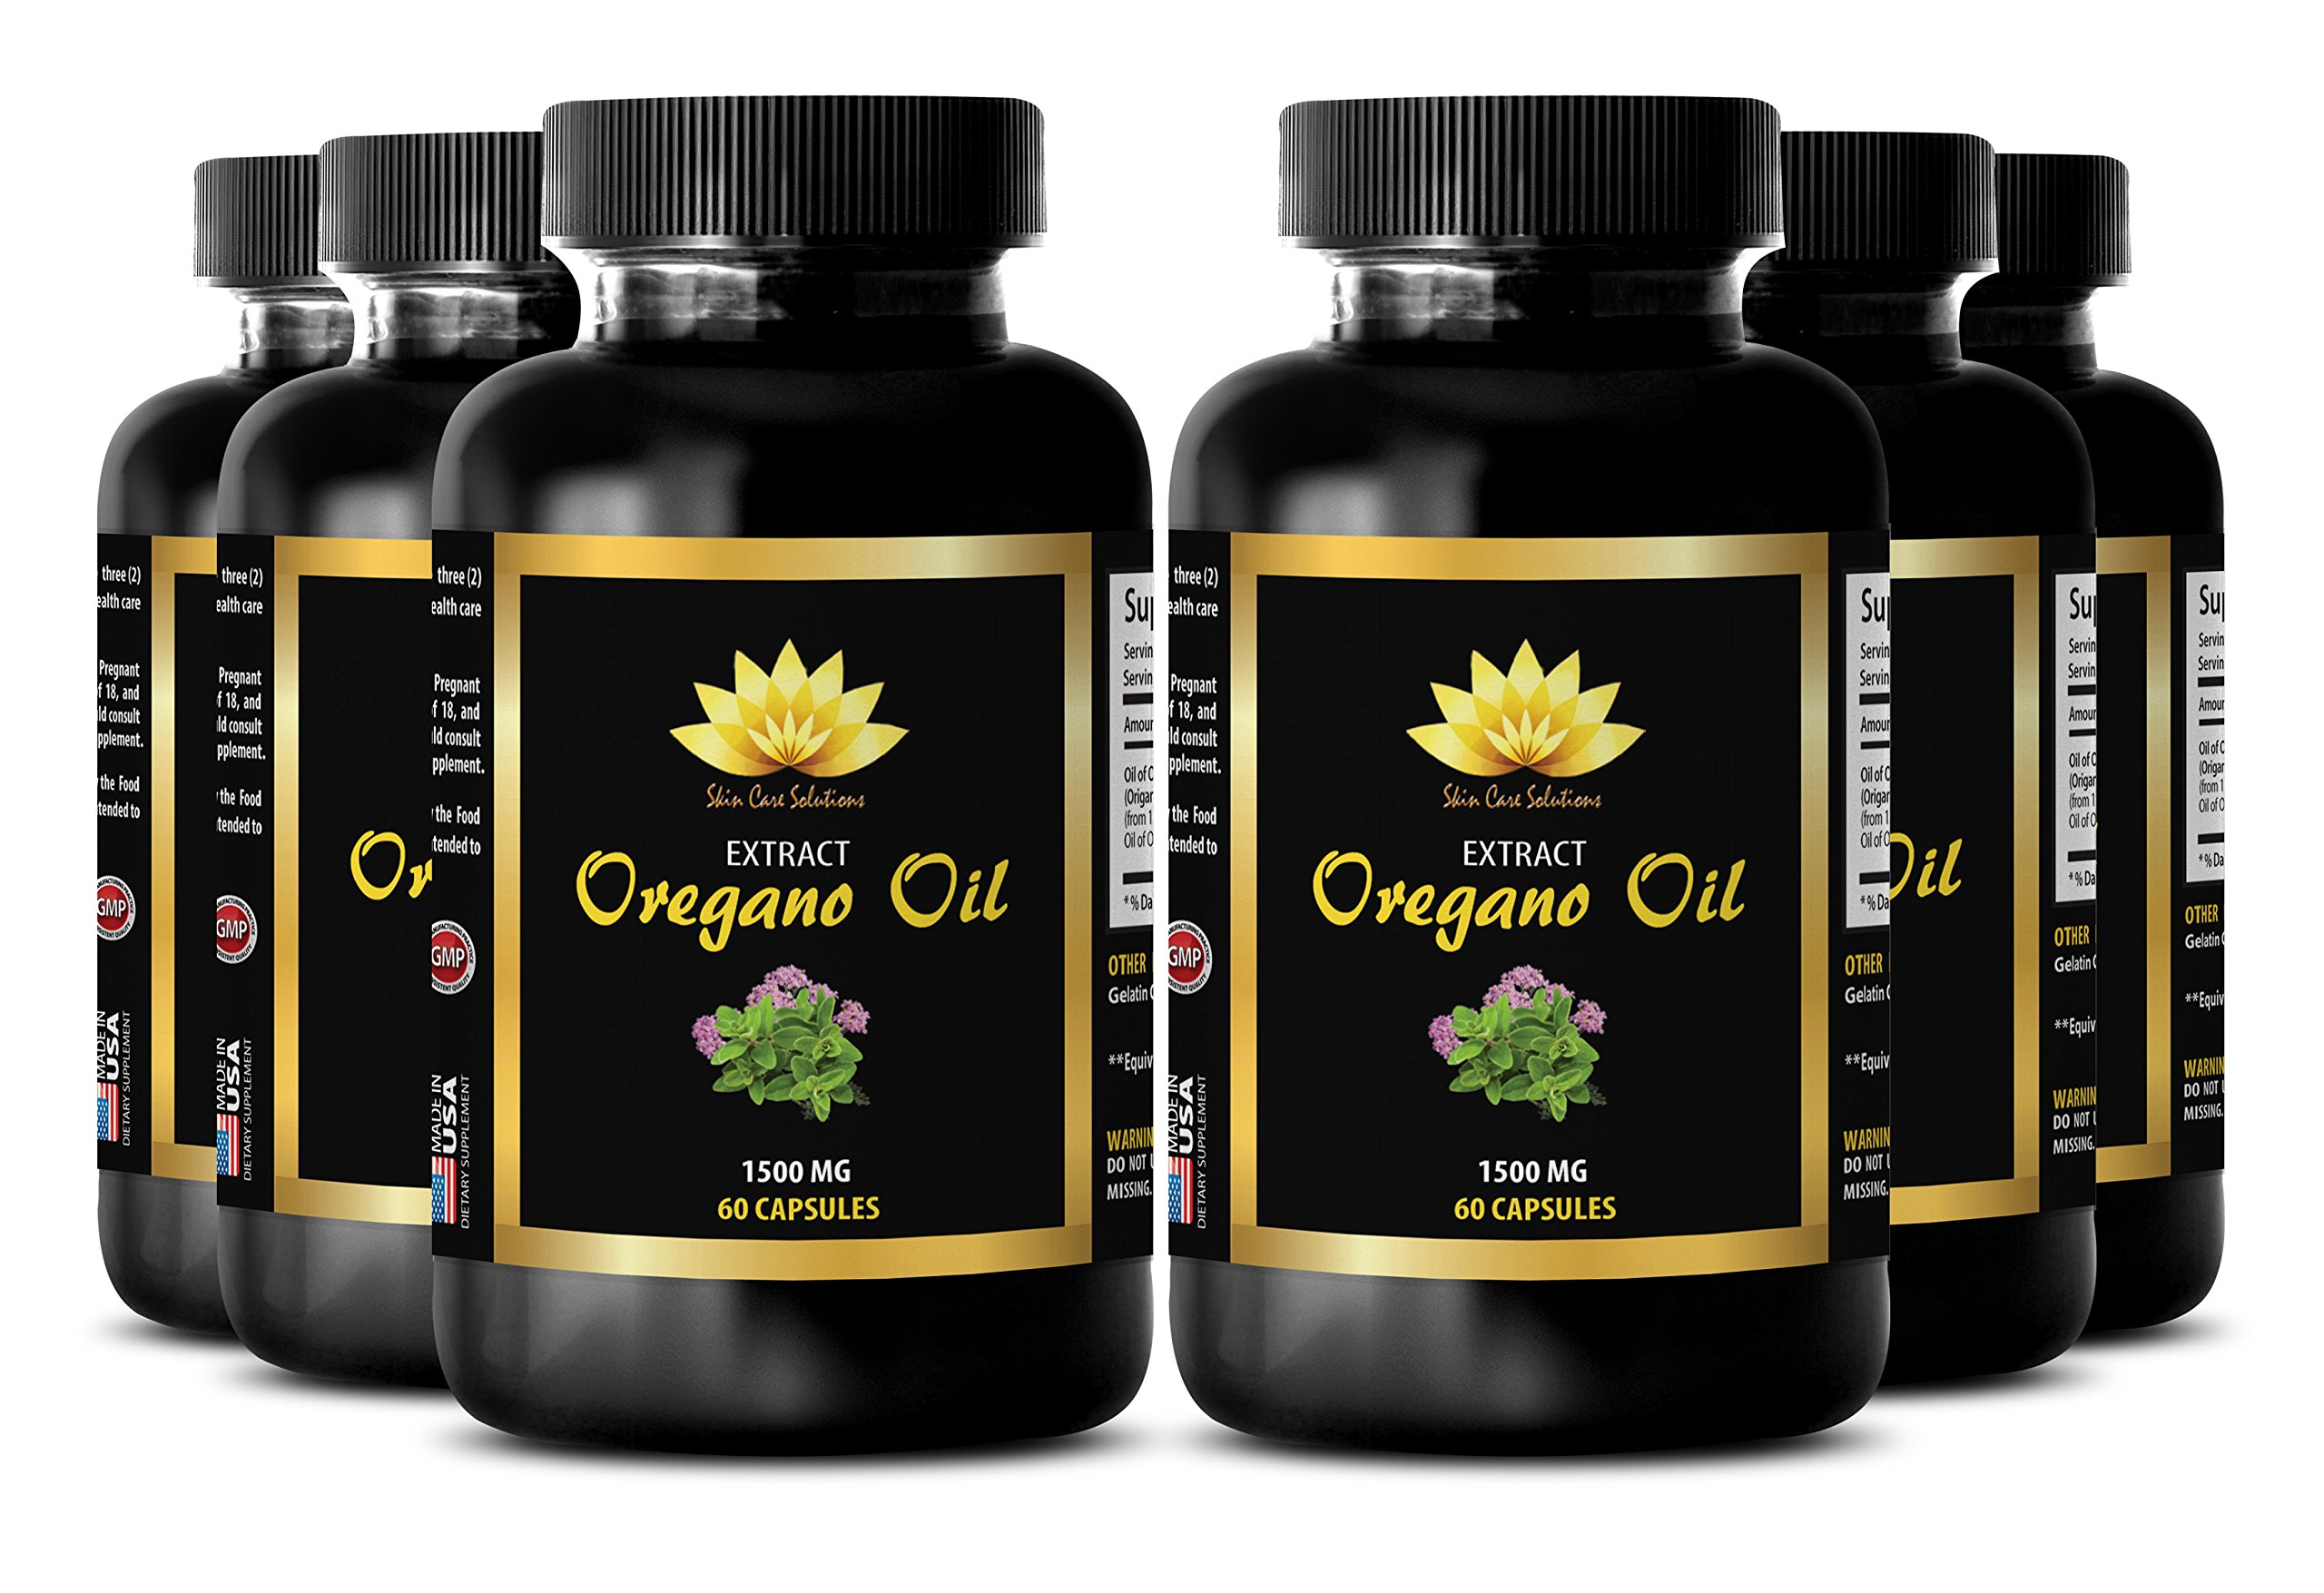 Candida support - OREGANO OIL EXTRACT 1500mg - Pure oregano oil capsules - 6 Bottles 360 Capsules by SKIN CARE SOLUTIONS